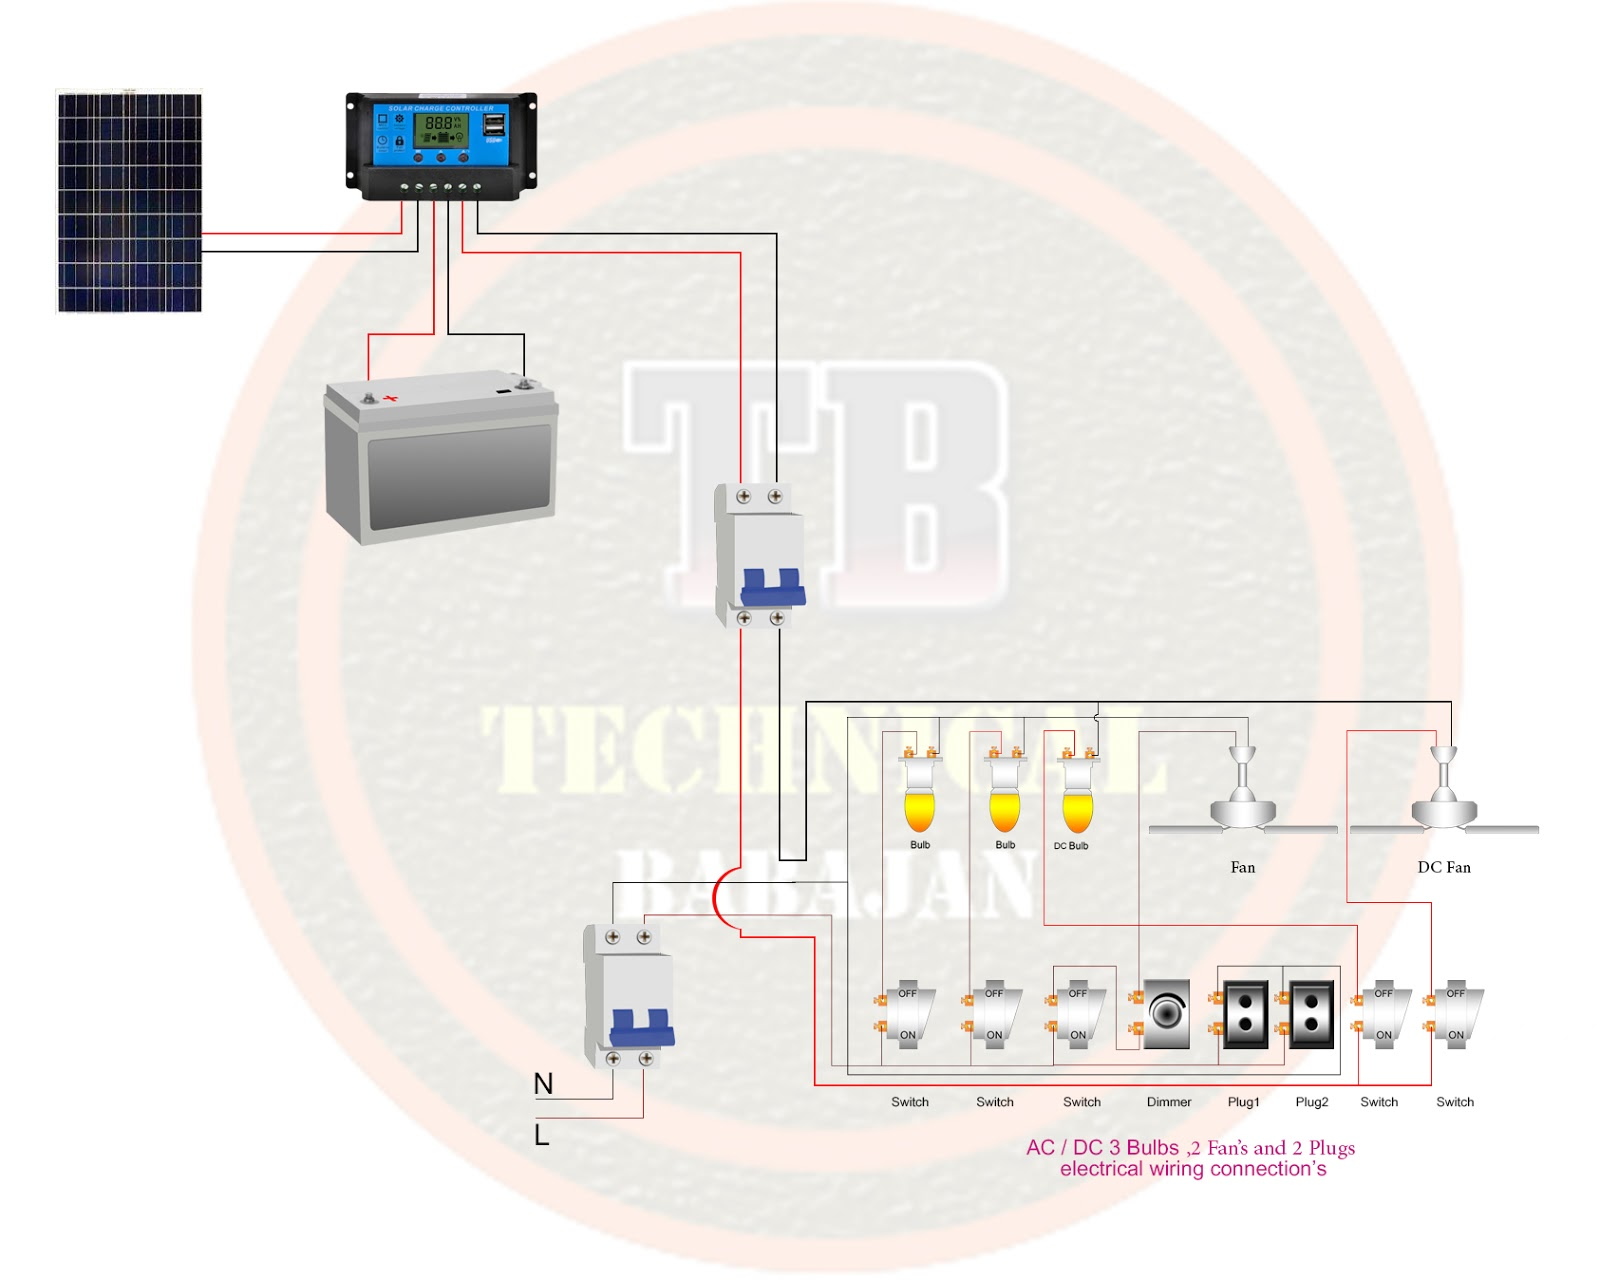 medium resolution of ac dc electrical wiring diagram